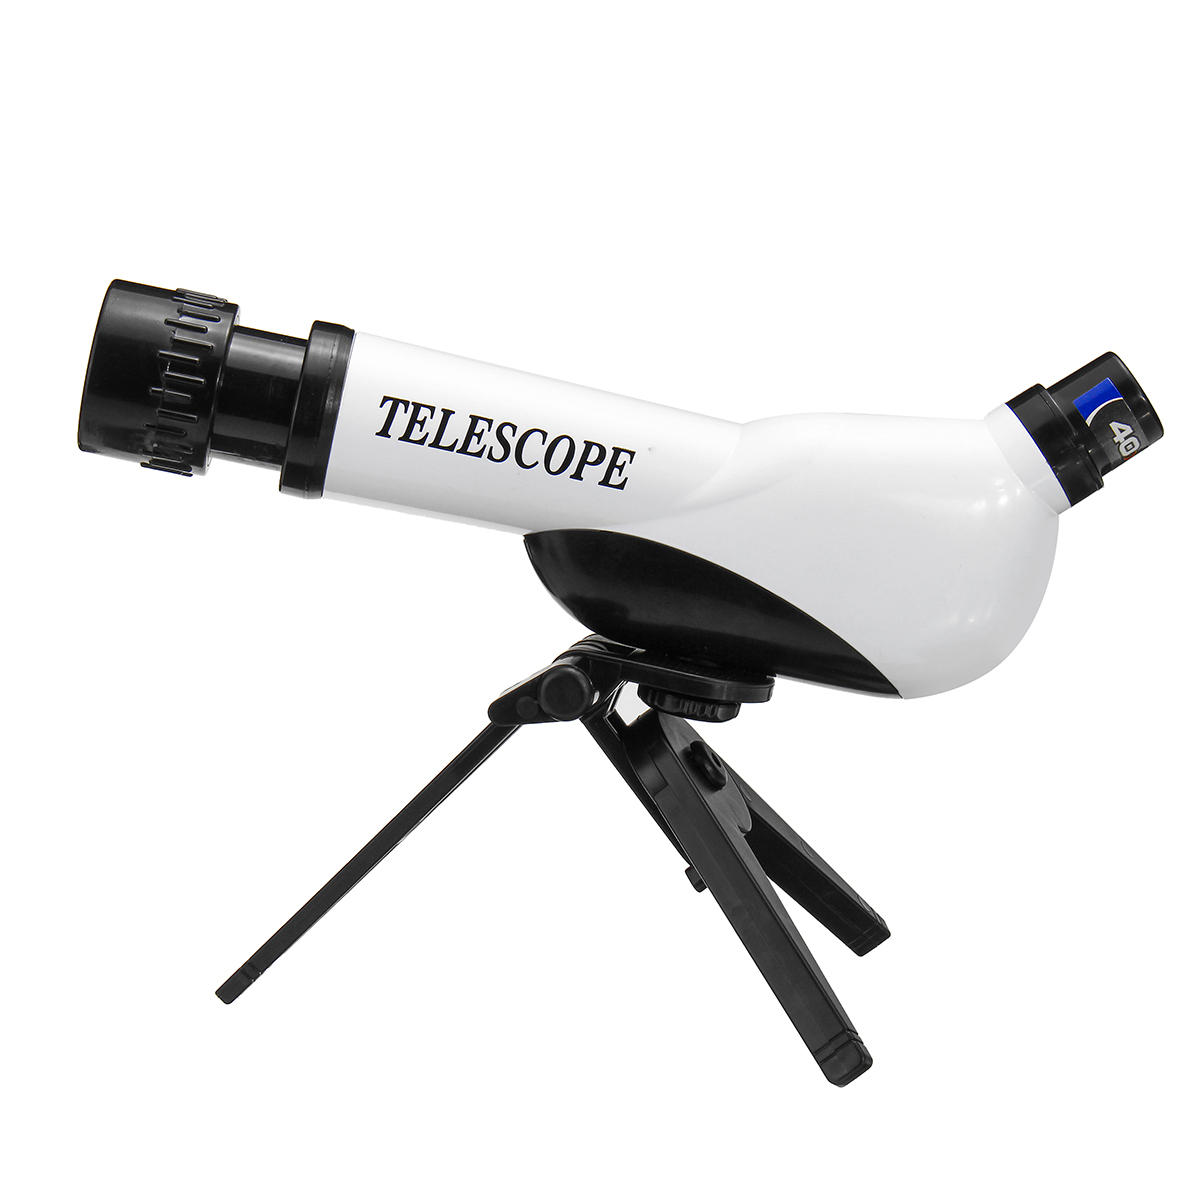 20-40X Children High-Definition Astronomical Telescope Monocular With Multi-eyepiece Science Education Toys Gifts